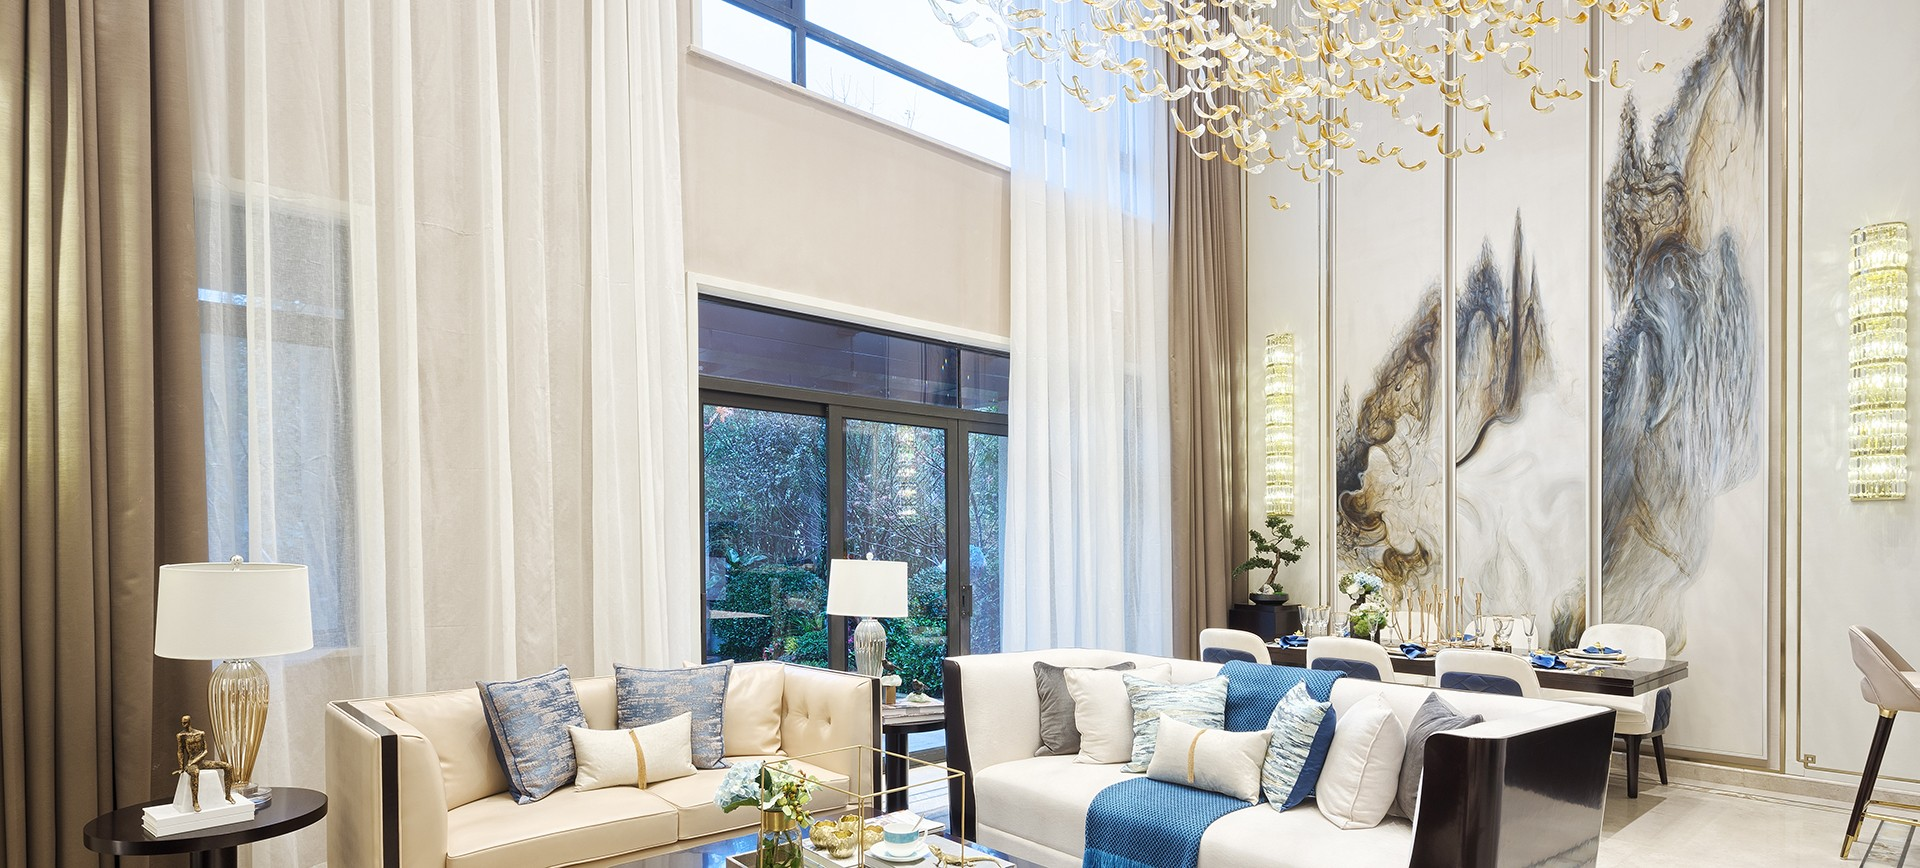 Custom Curtains from Window Treatments by Design